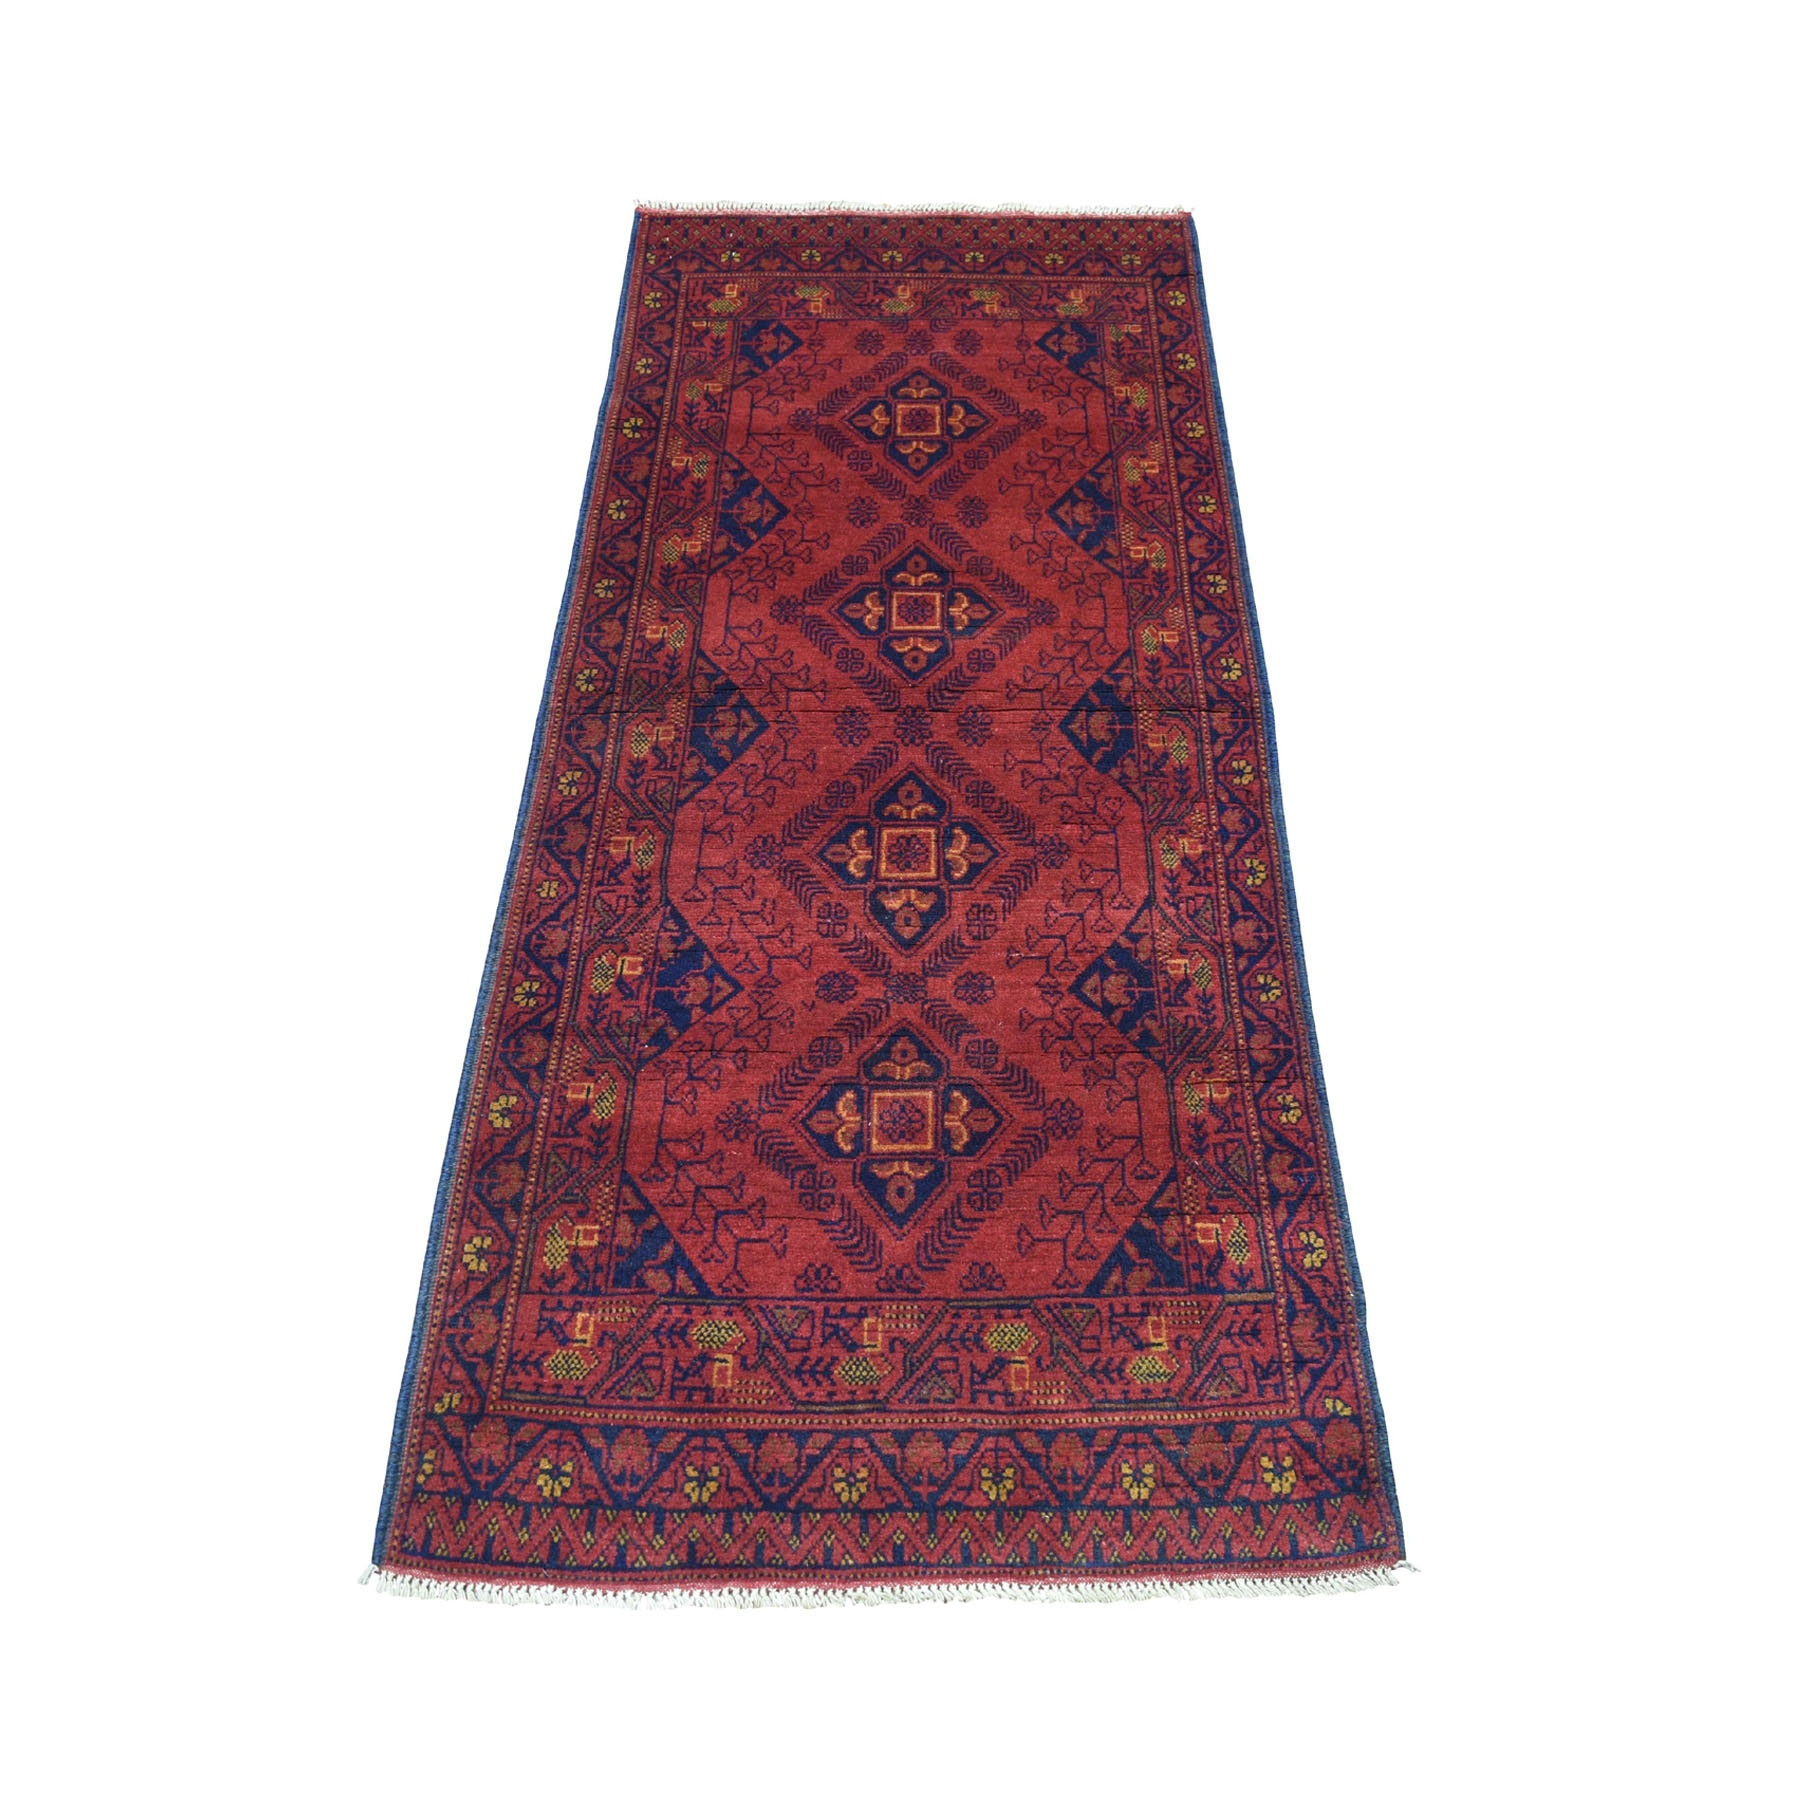 """2'6""""x6'2"""" Deep and Saturated Red Geometric Afghan Andkhoy Pure Wool Hand Knotted Runner Oriental Rug 53421"""